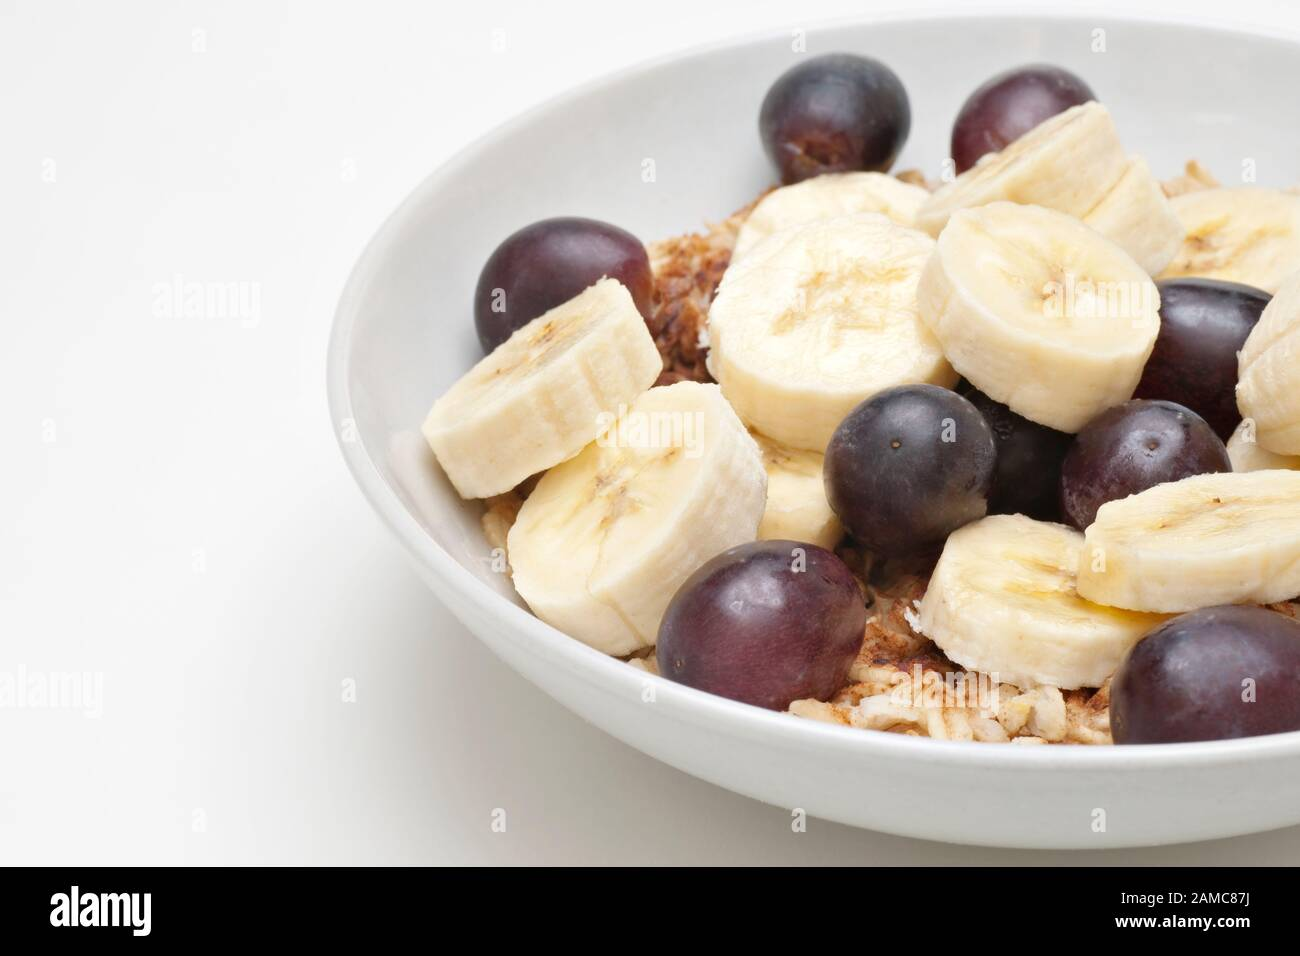 Healthy Low Fat Breakfast Of Hot Oatmeal Banana Slices And